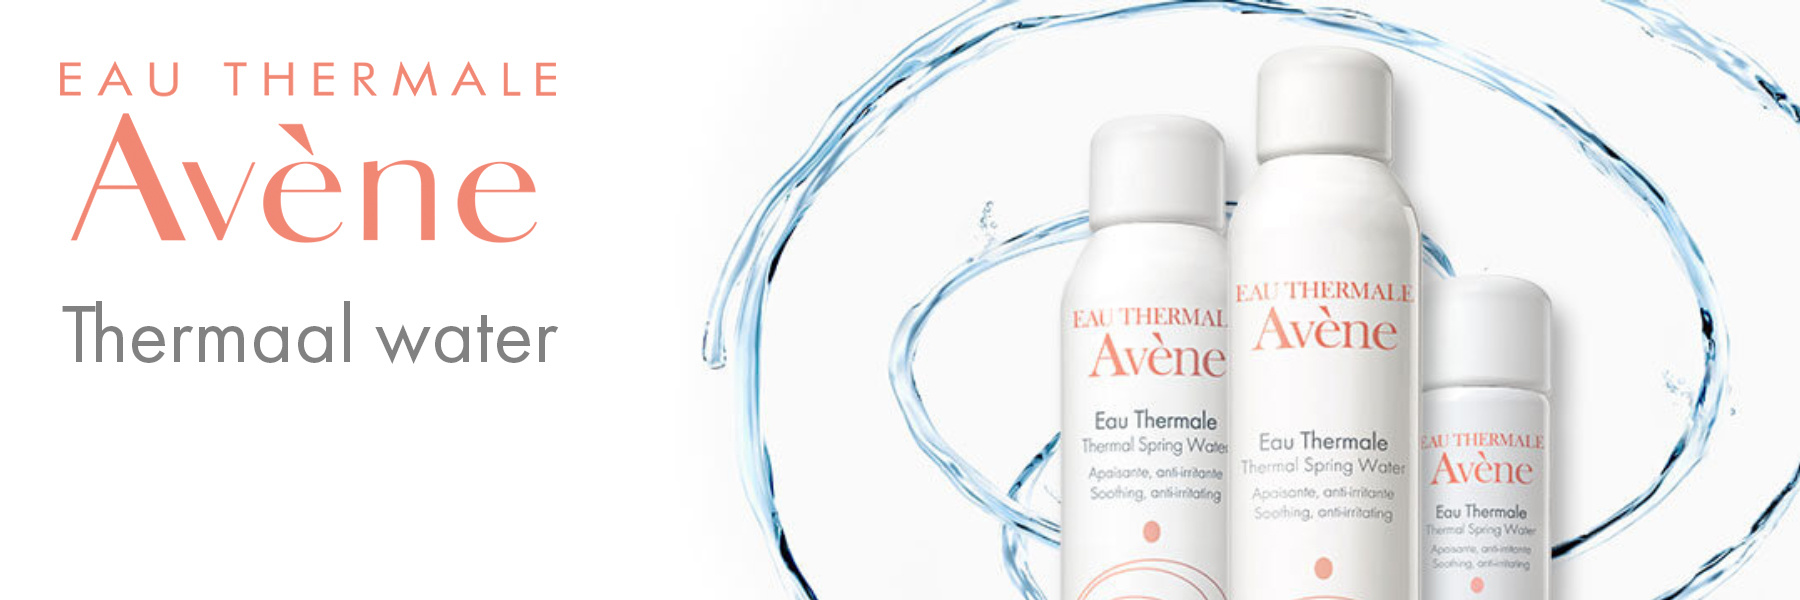 Avène Thermaal water